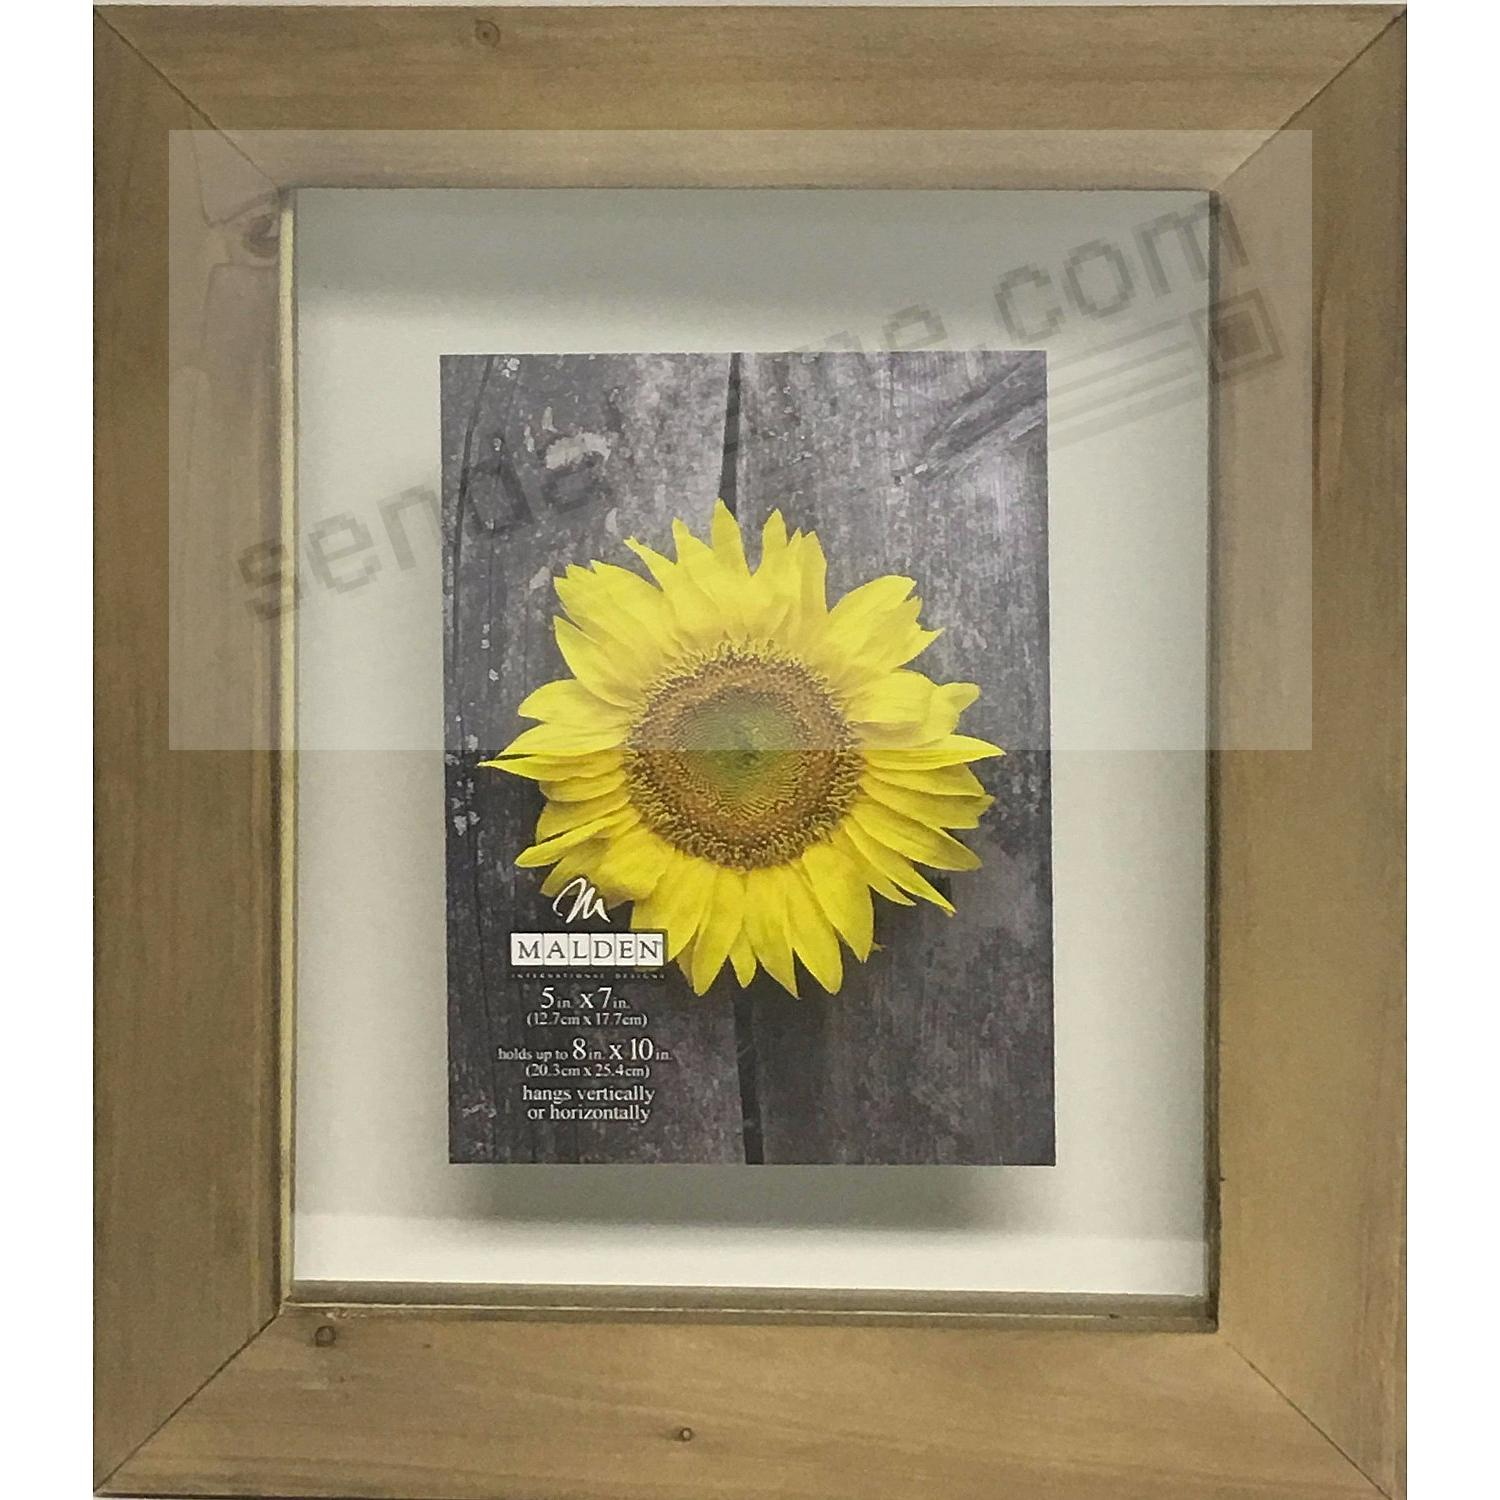 BARNWOOD DISTRESS FLOAT 8x10/5x7 frame by Malden® - Picture Frames ...